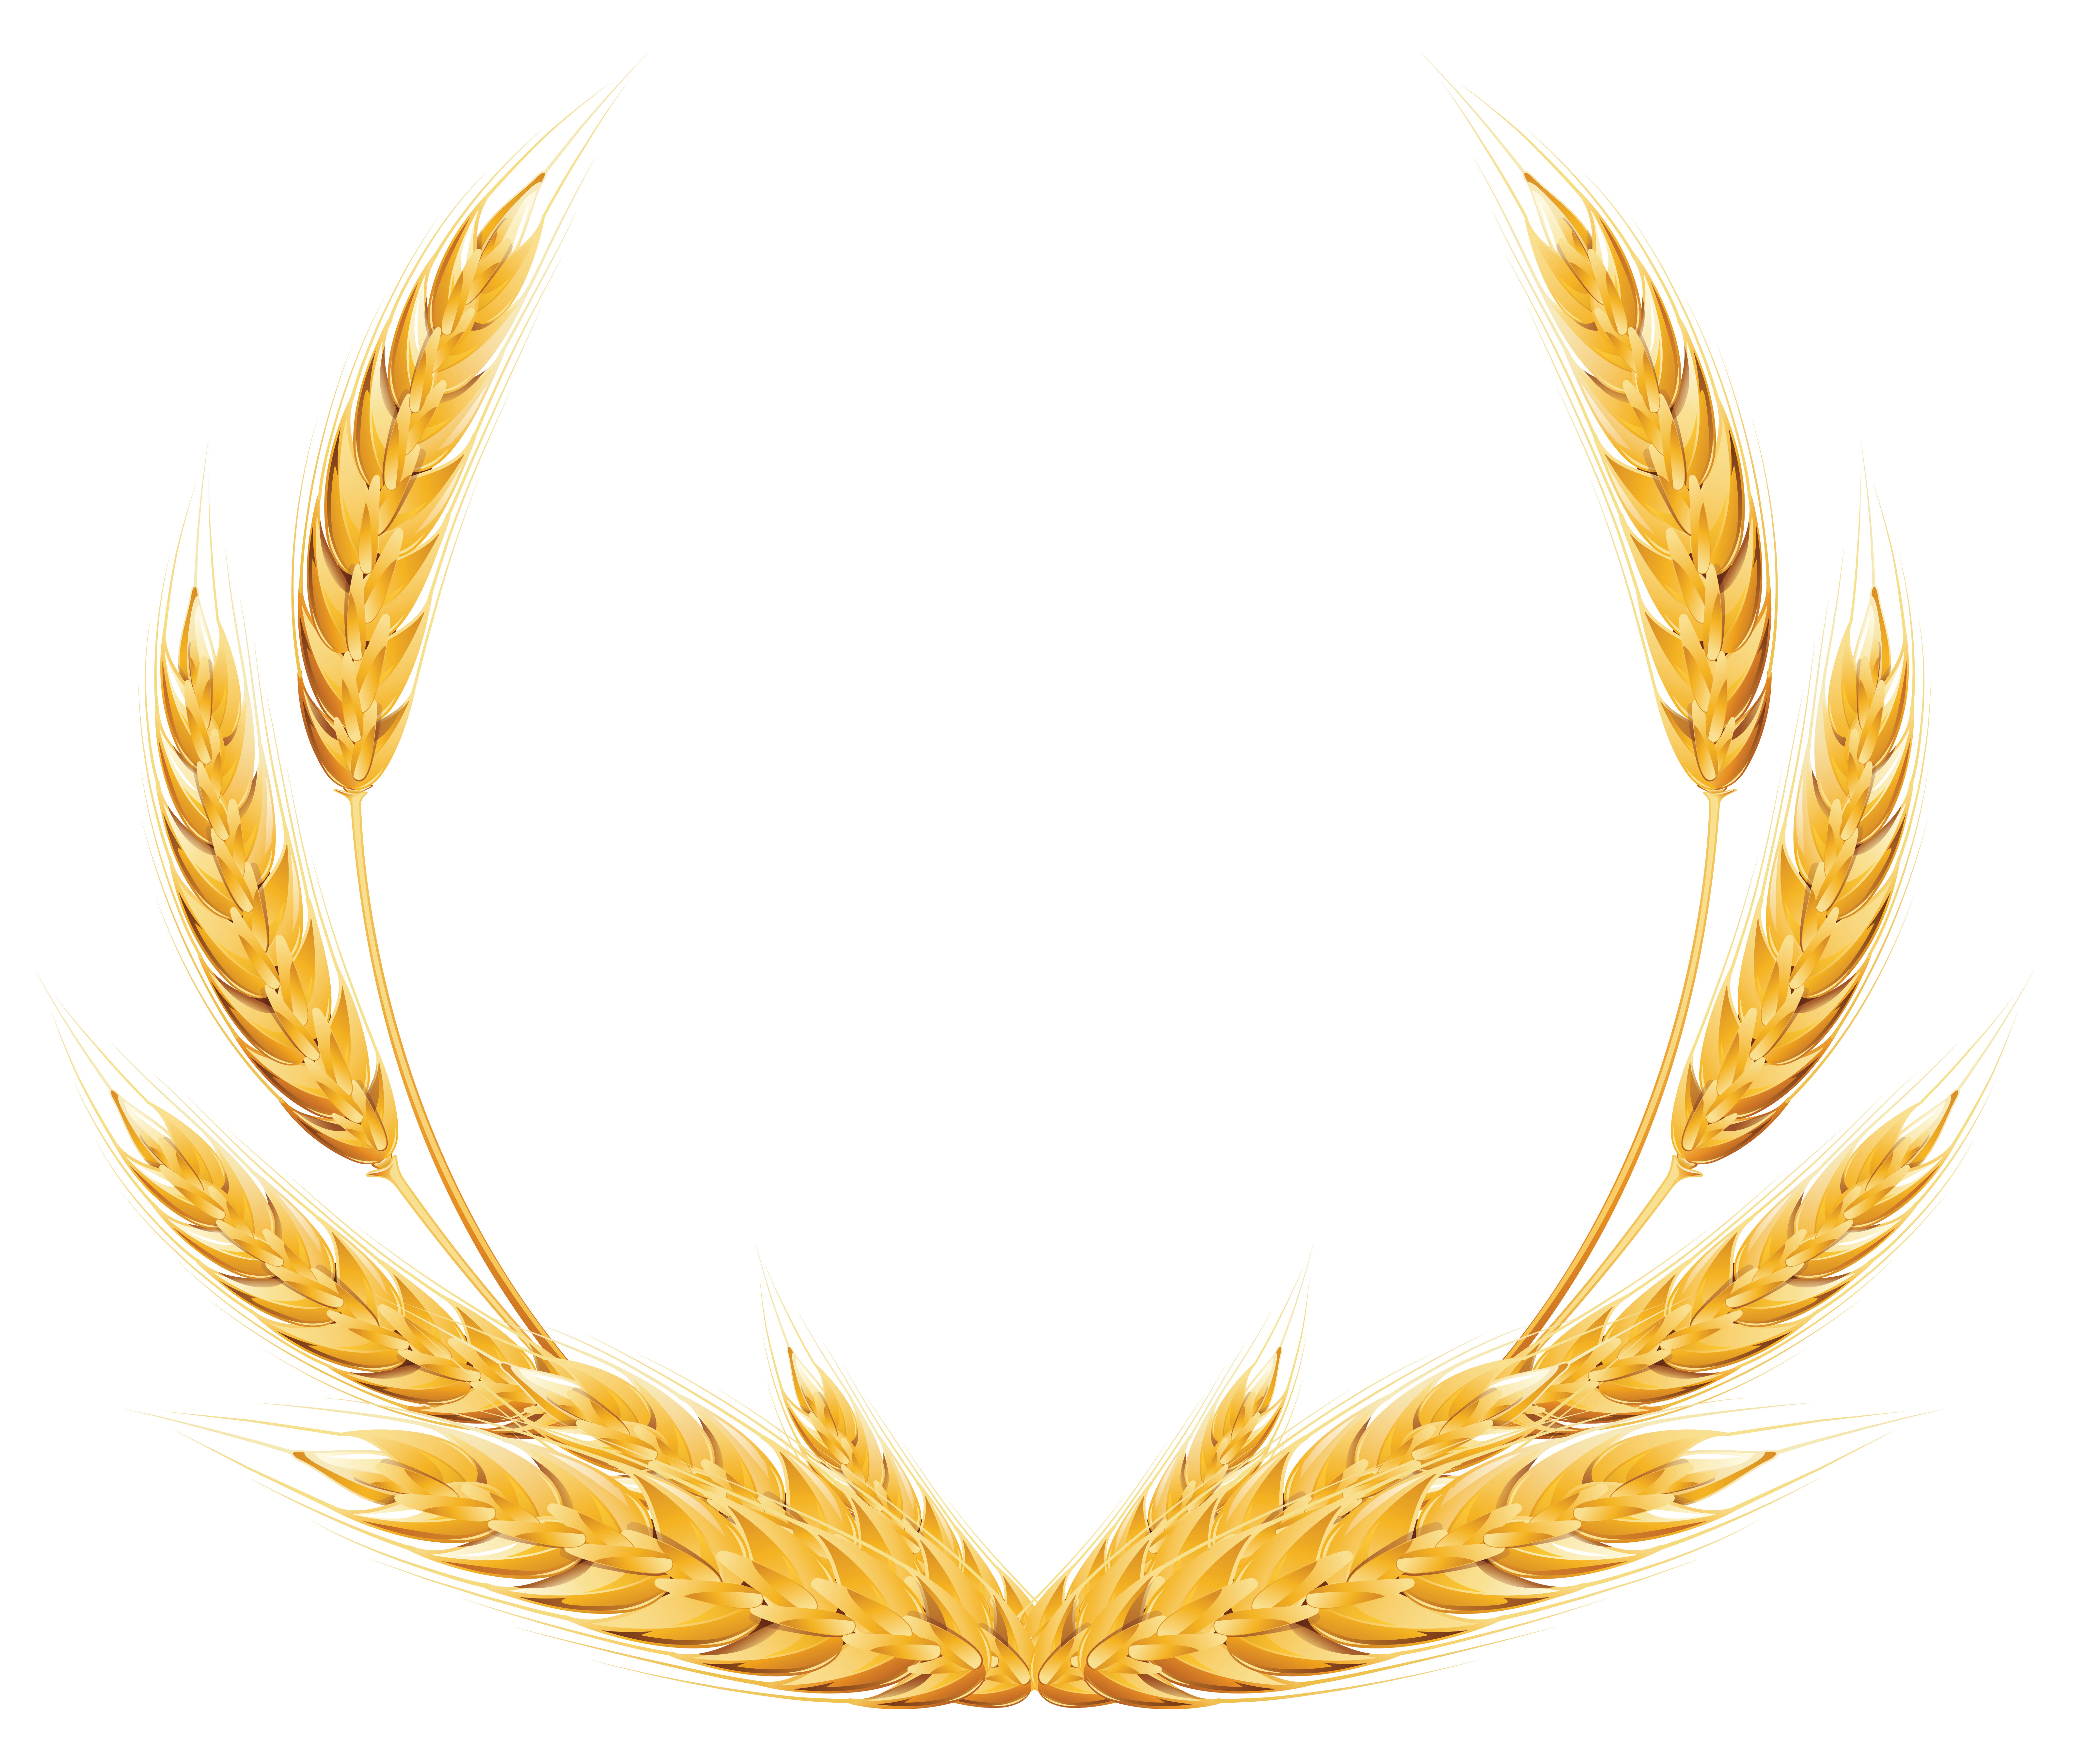 Decoration png image gallery. Grain clipart wheat straw